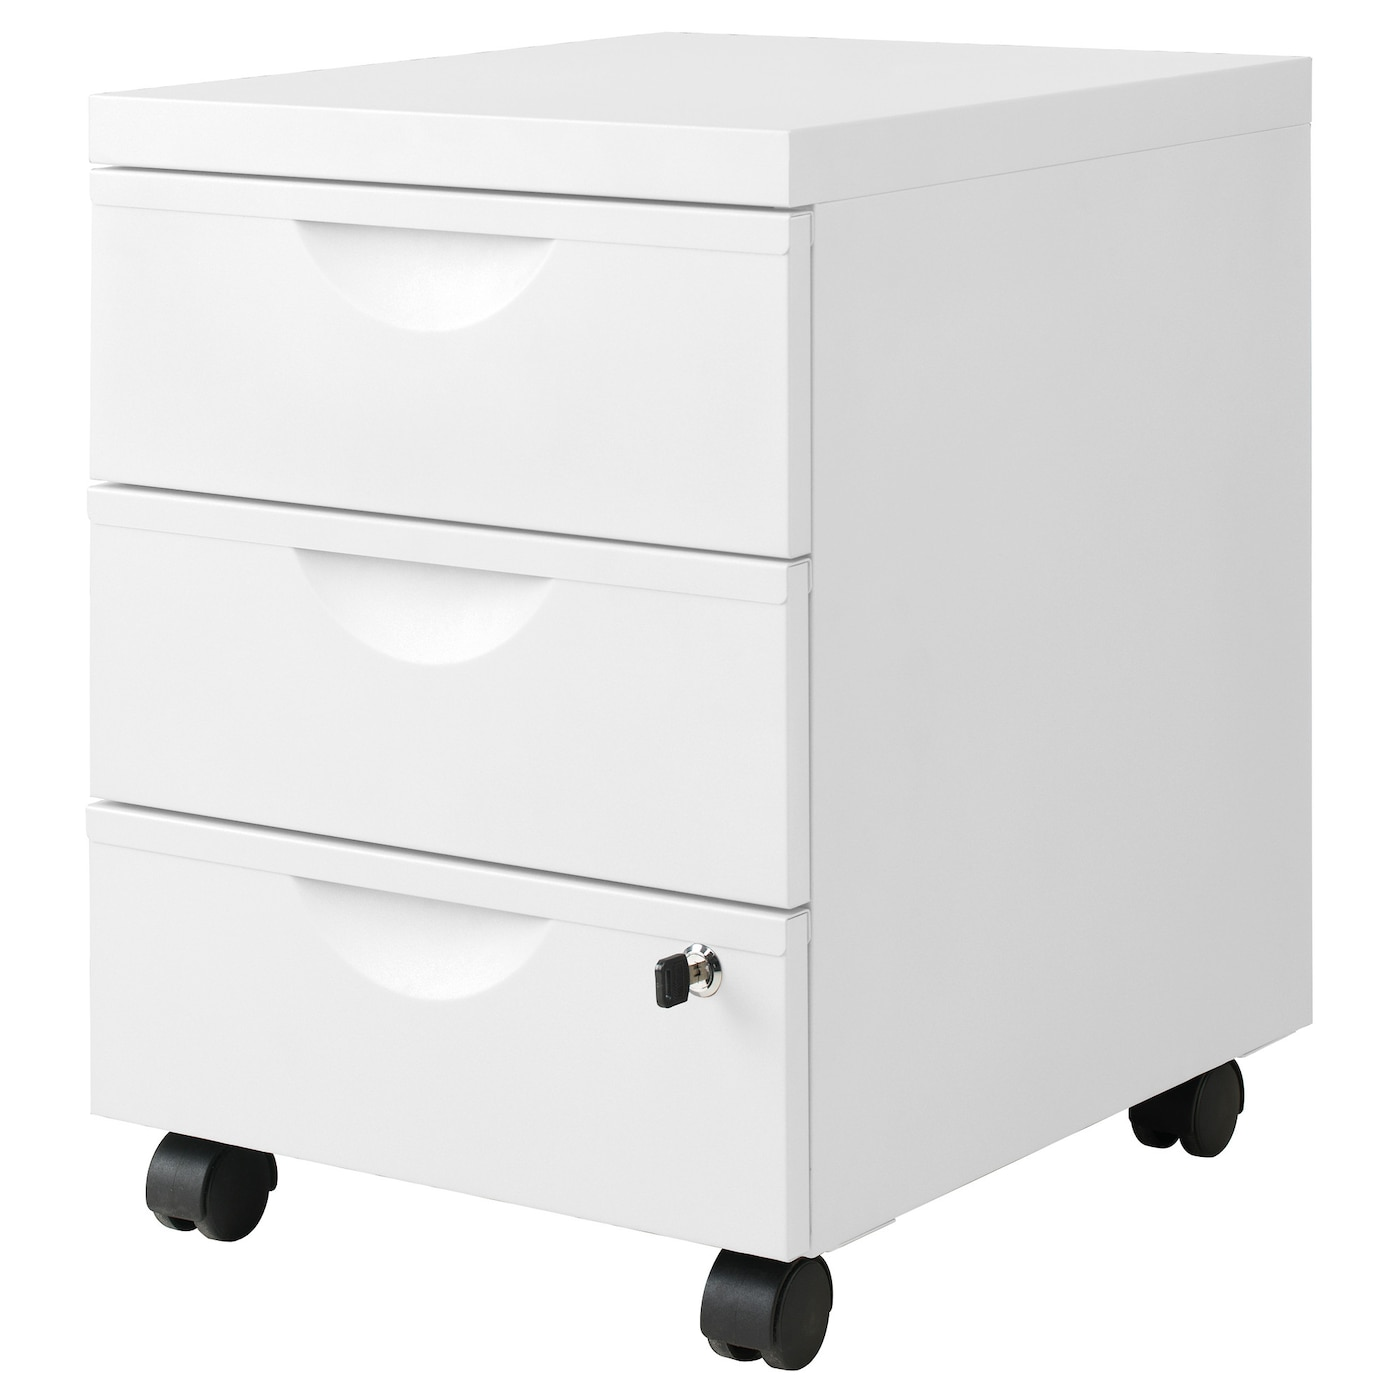 IKEA ERIK Drawer Unit W 3 Drawers On Castors Easy To Move Where It Is Needed